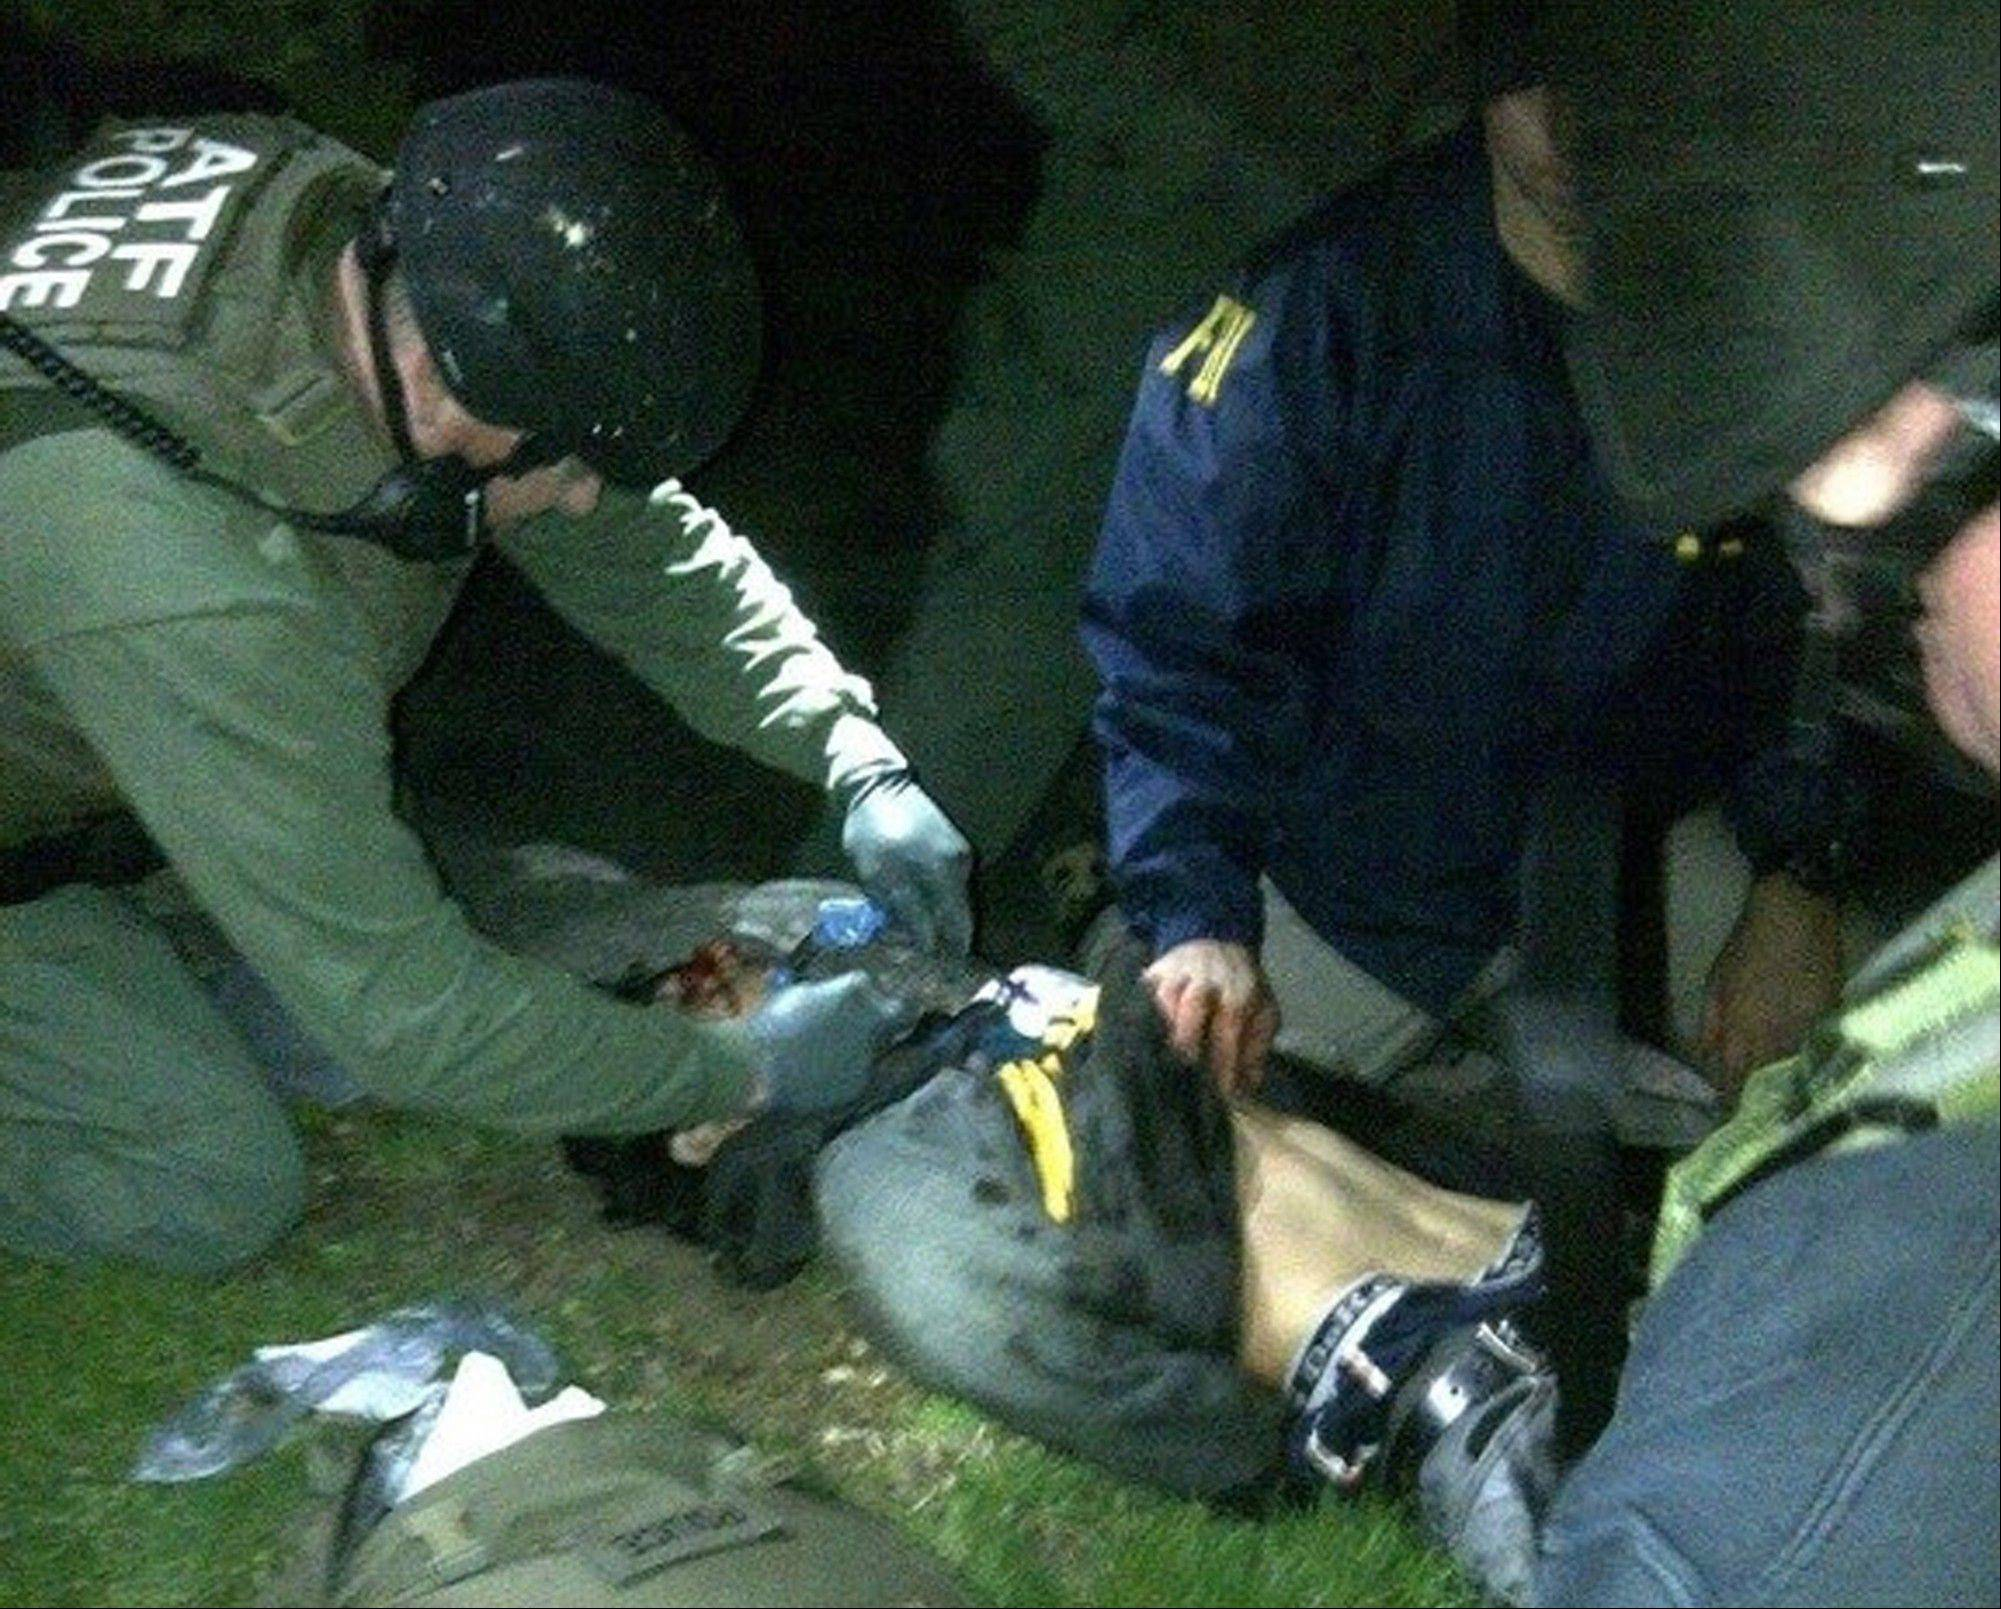 Federal agents check suspect Dzhokhar Tsarnaev for explosives and also give him medical attention after he was apprehended in Watertown, Mass., at the end of a tense day that began with his older brother, Tamerlan, dying in a getaway attempt.